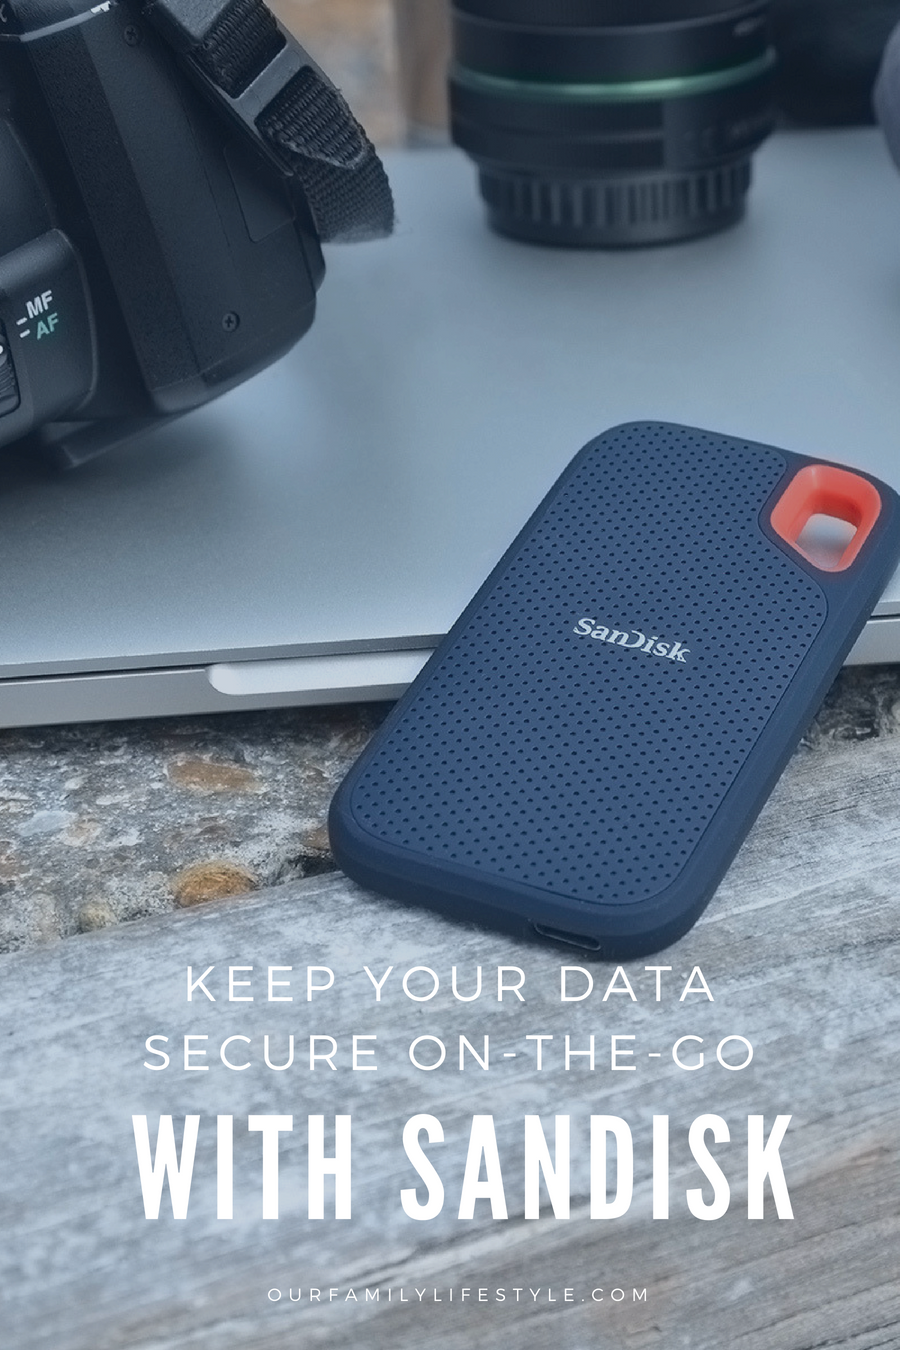 The SanDisk portable SSD, available at Best Buy, features a compact size and water-resistant construction, making it ideal for use on-the-go.